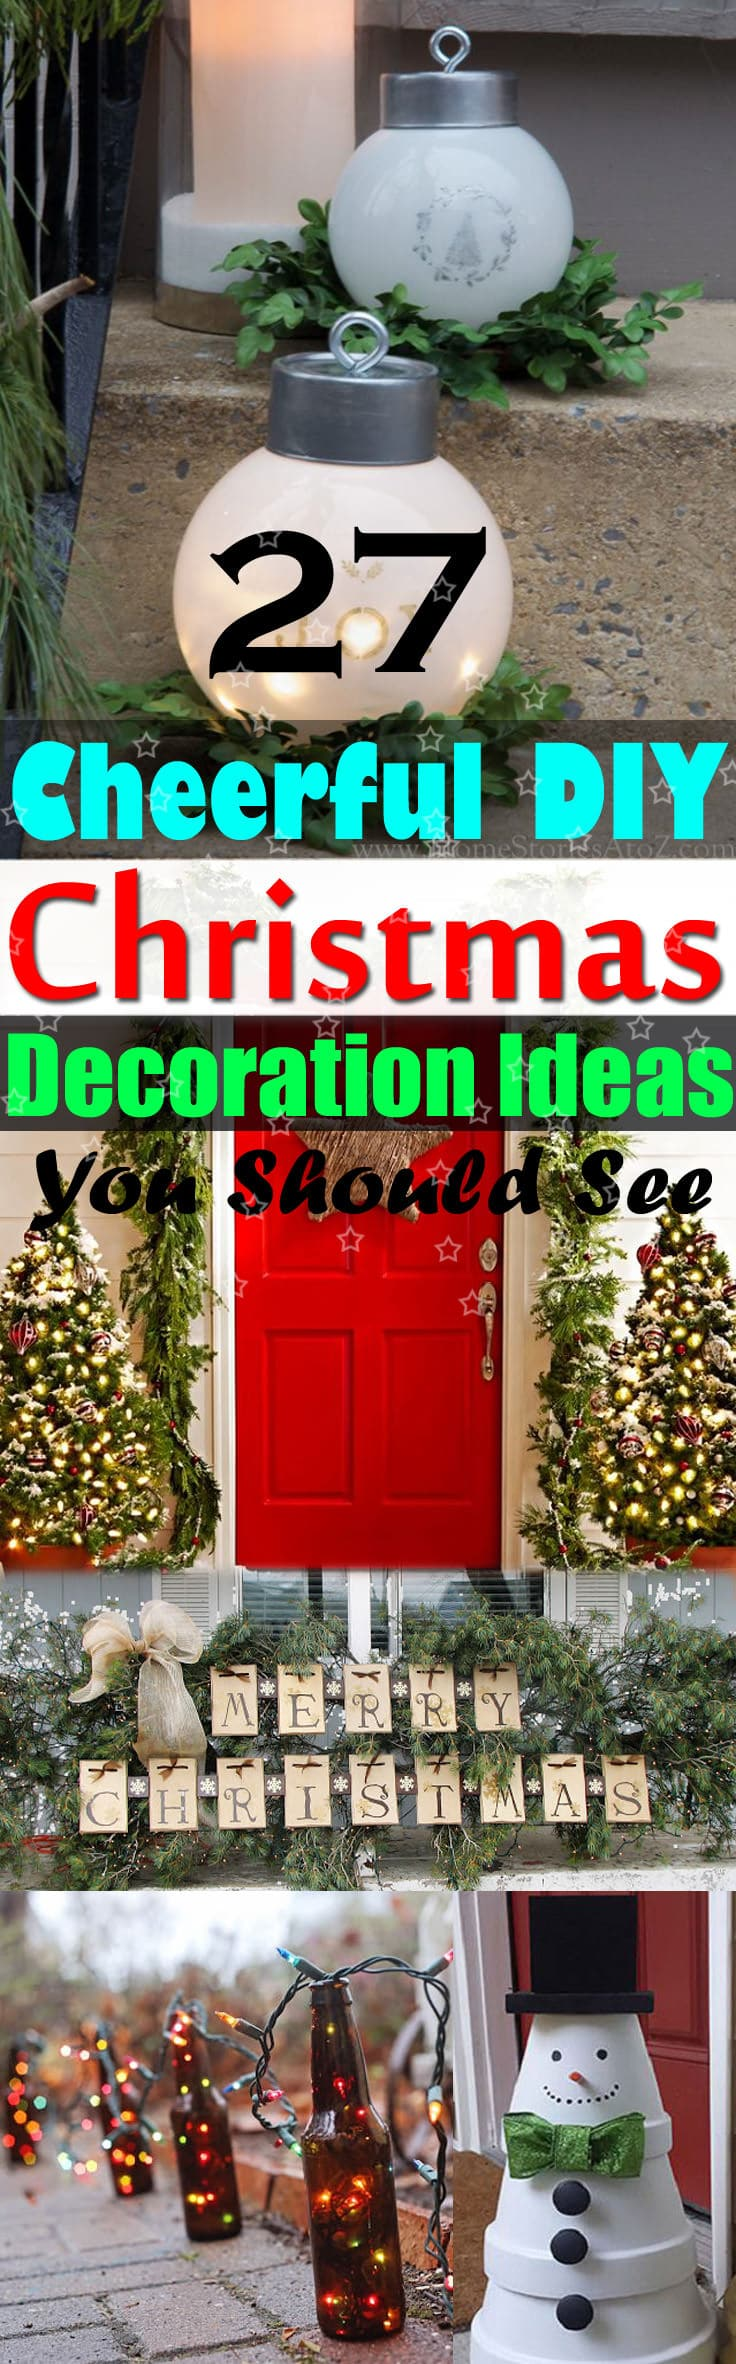 27 Cheerful Diy Christmas Decoration Ideas You Should Look Balcony Garden Web